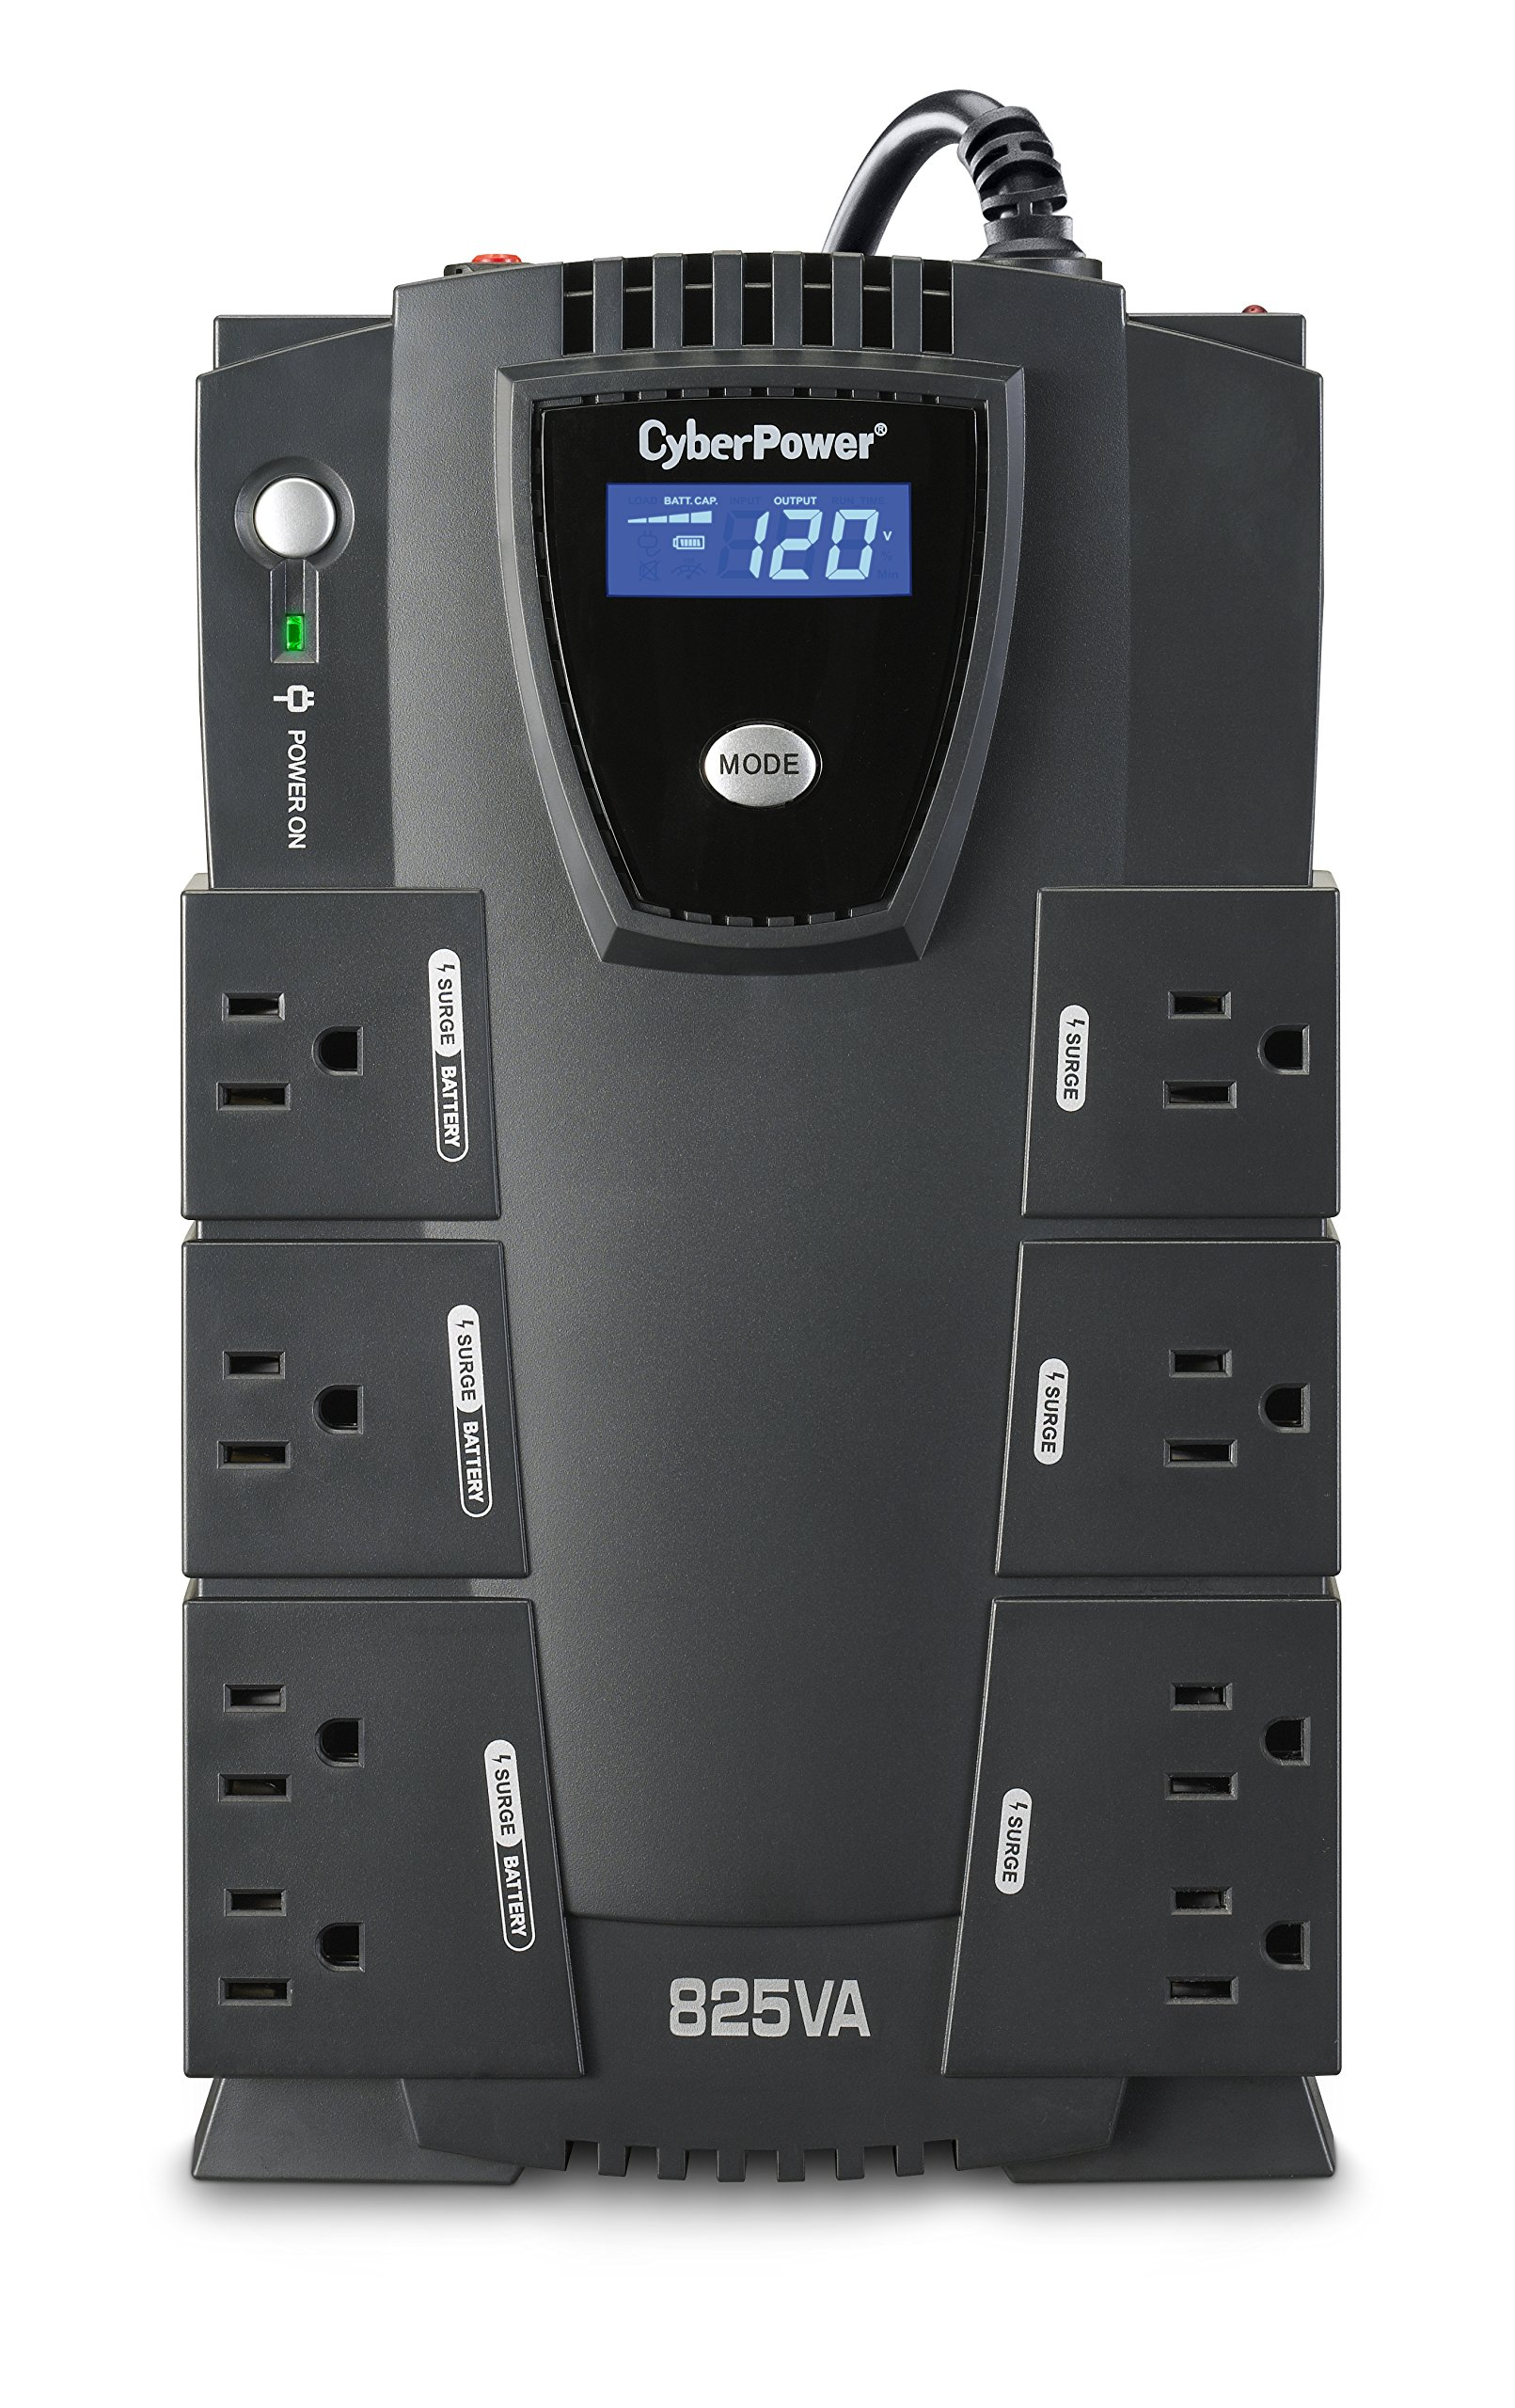 CyberPower CP825LCD Intelligent LCD UPS System, 825VA/450W, 8 Outlets, Compact by CyberPower